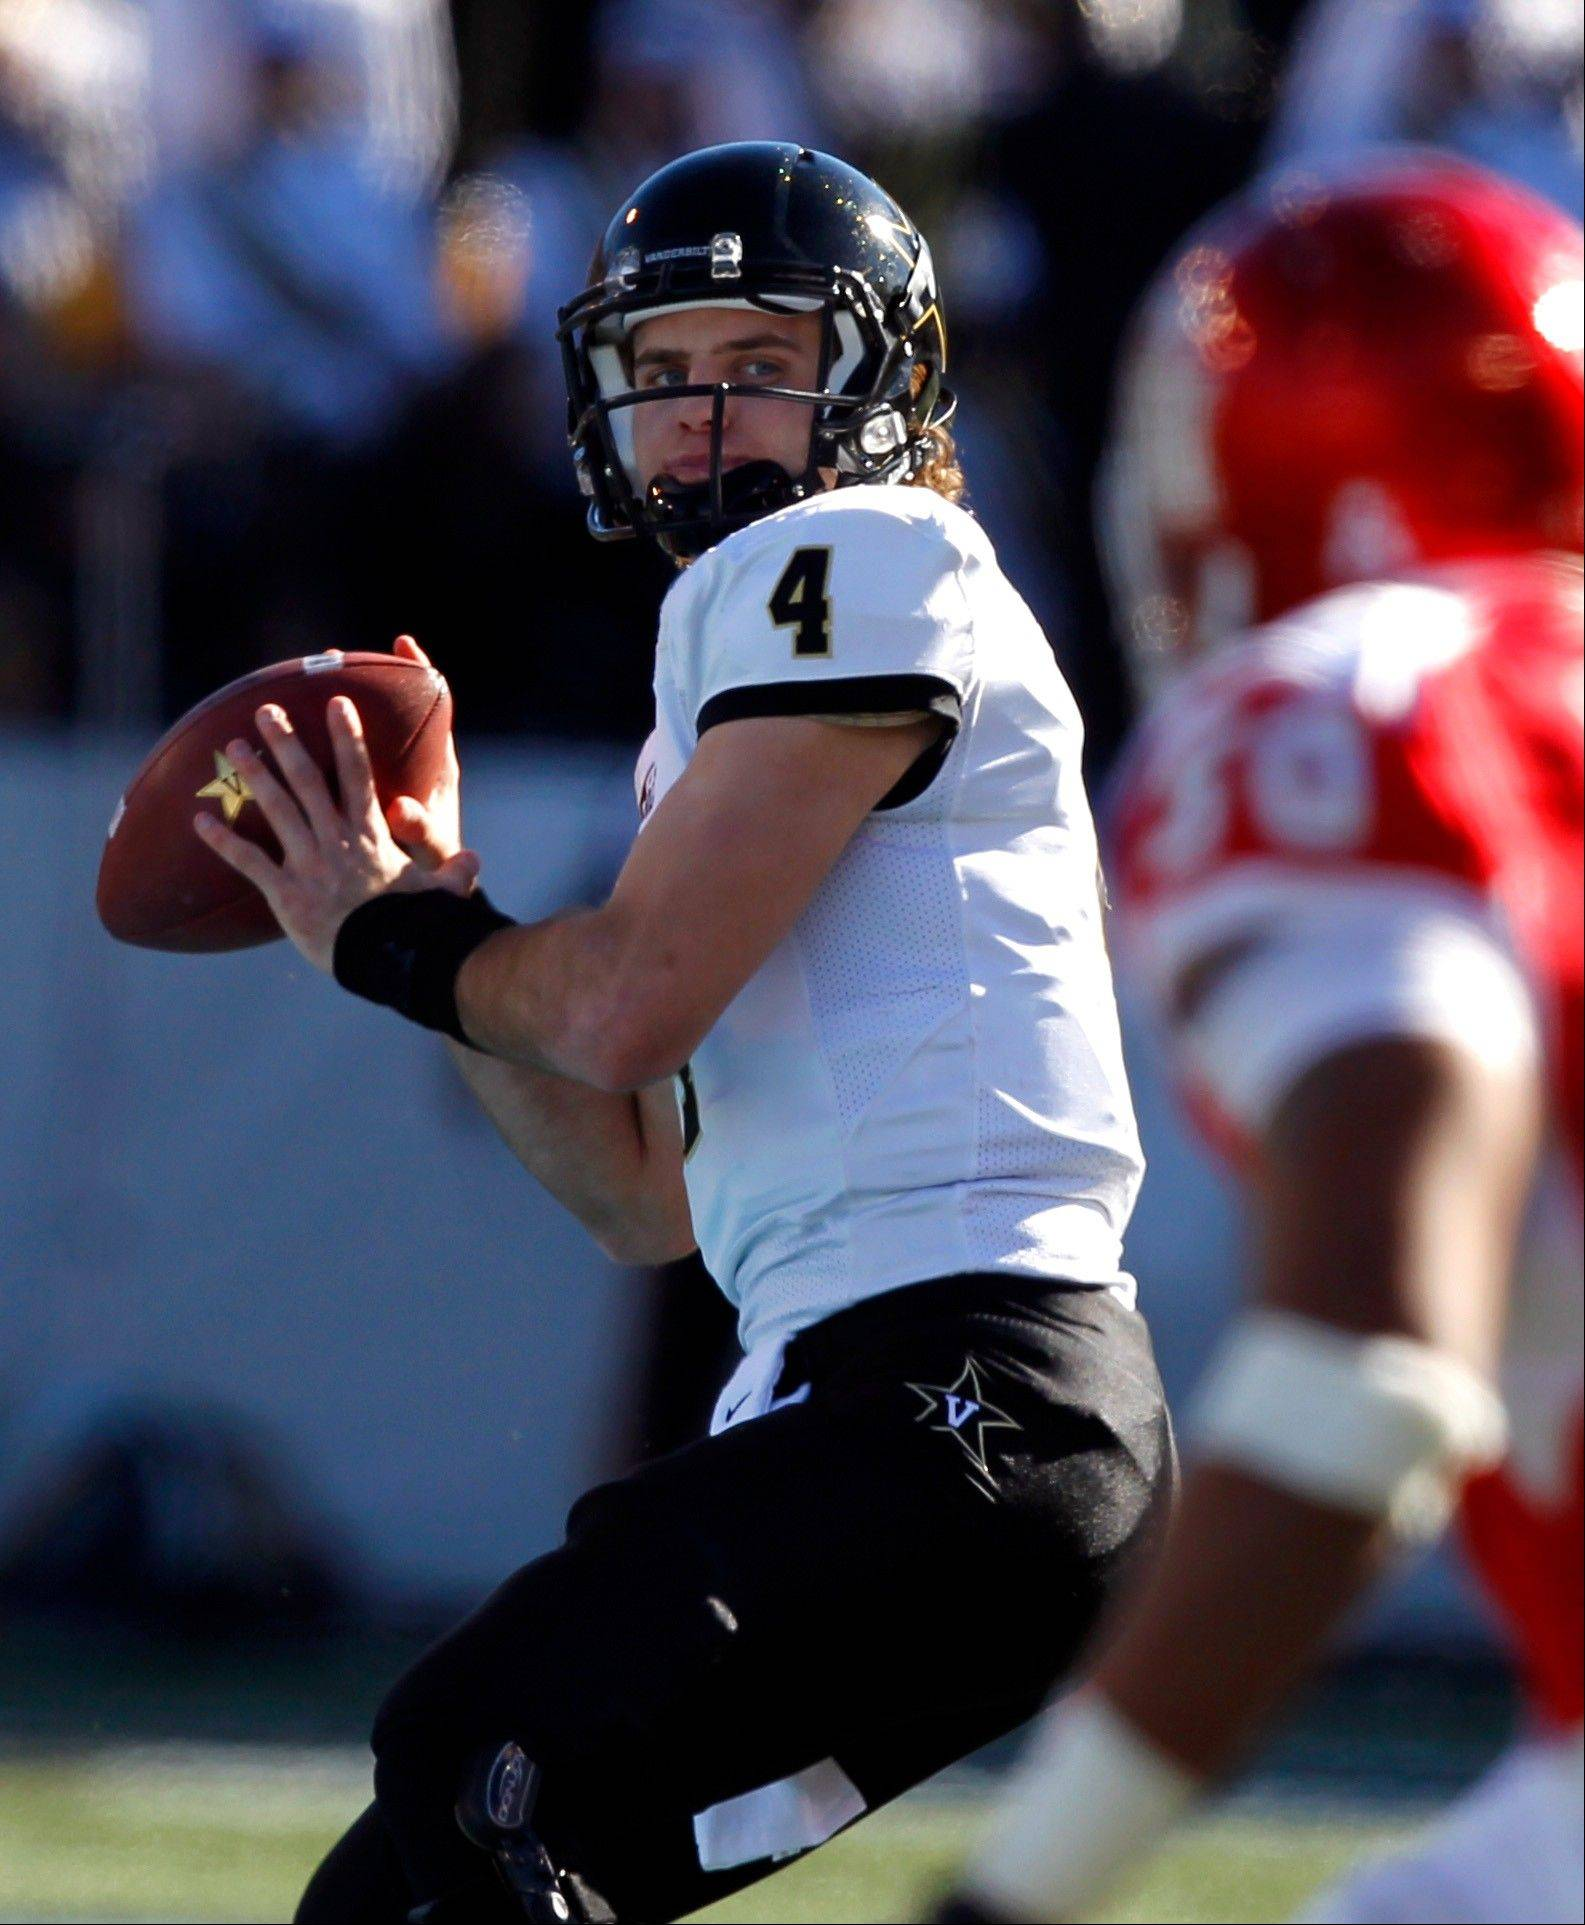 Vanderbilt quarterback Patton Robinette (4) throws a pass down field against Houston during the Compass Bowl Saturday in Alabama.